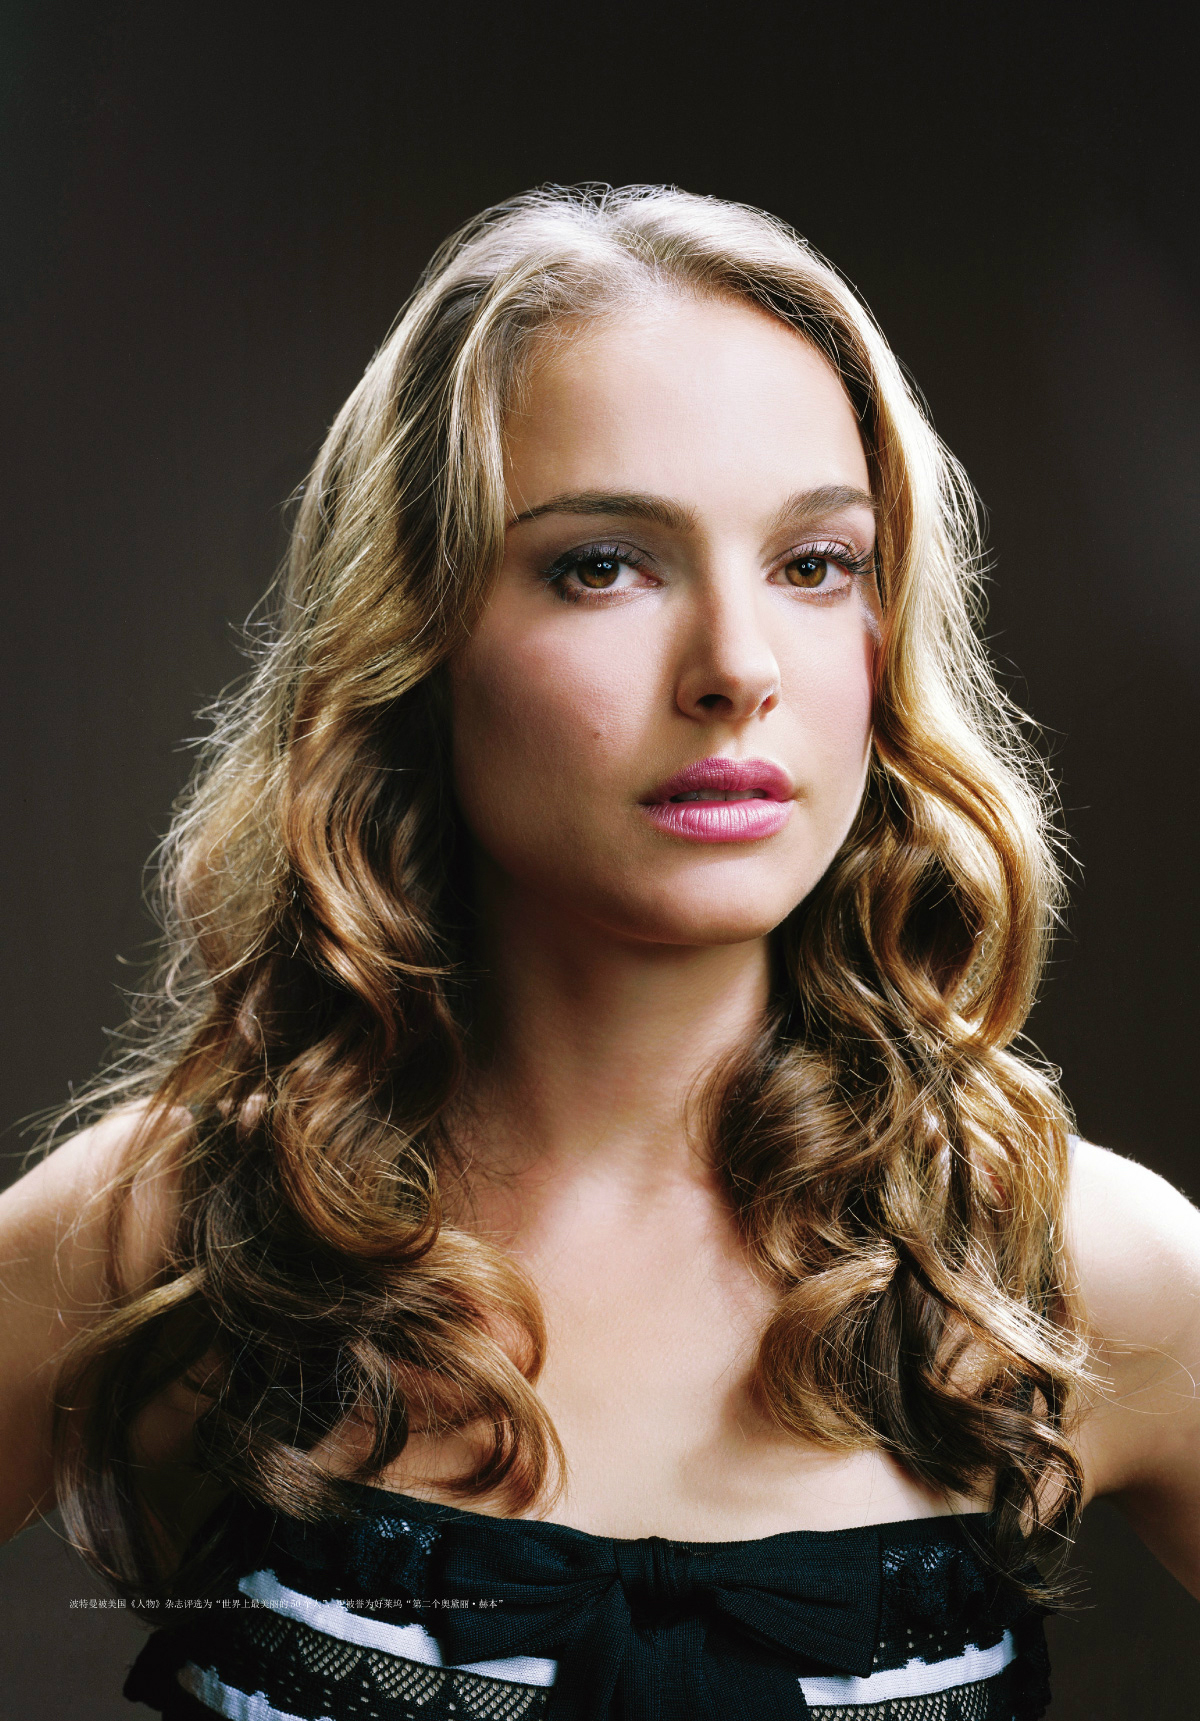 2010 TIFF Portrait Shoot - Natalie Portman Photo (36187231 ... Natalie Portman